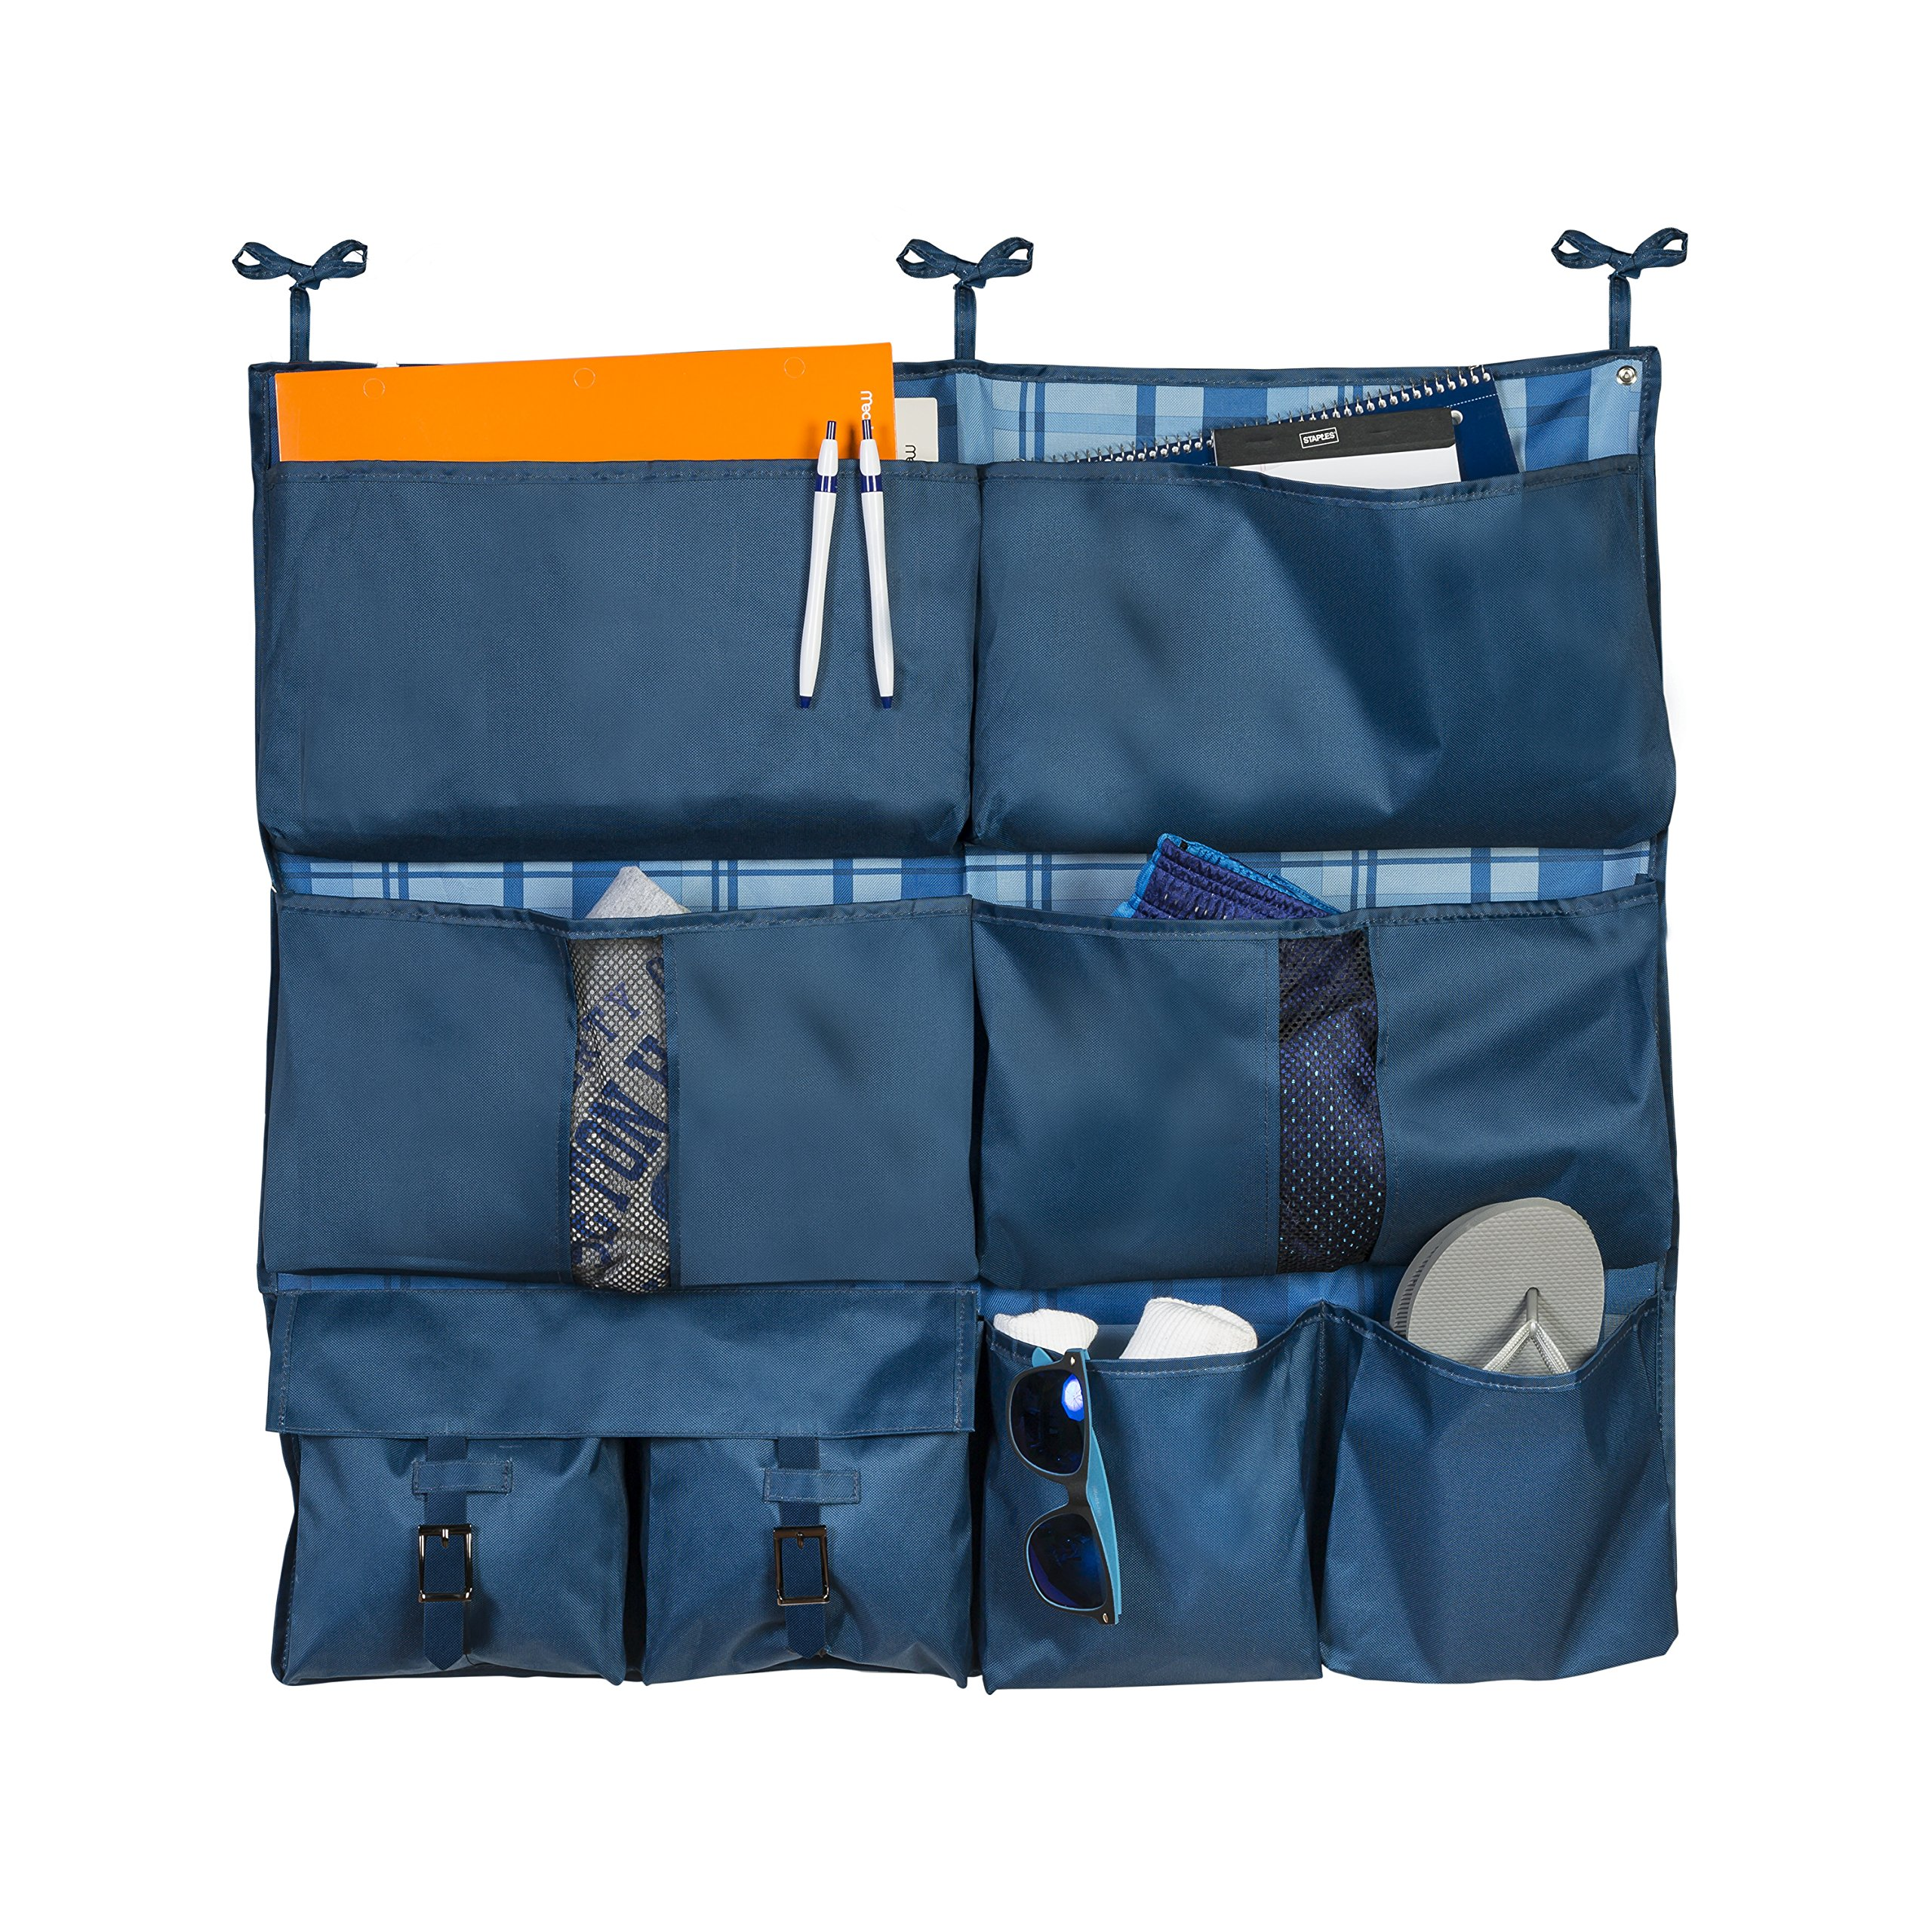 Honey-Can-Do BTS-01835 2-in-1 Bed Organizer, Blue